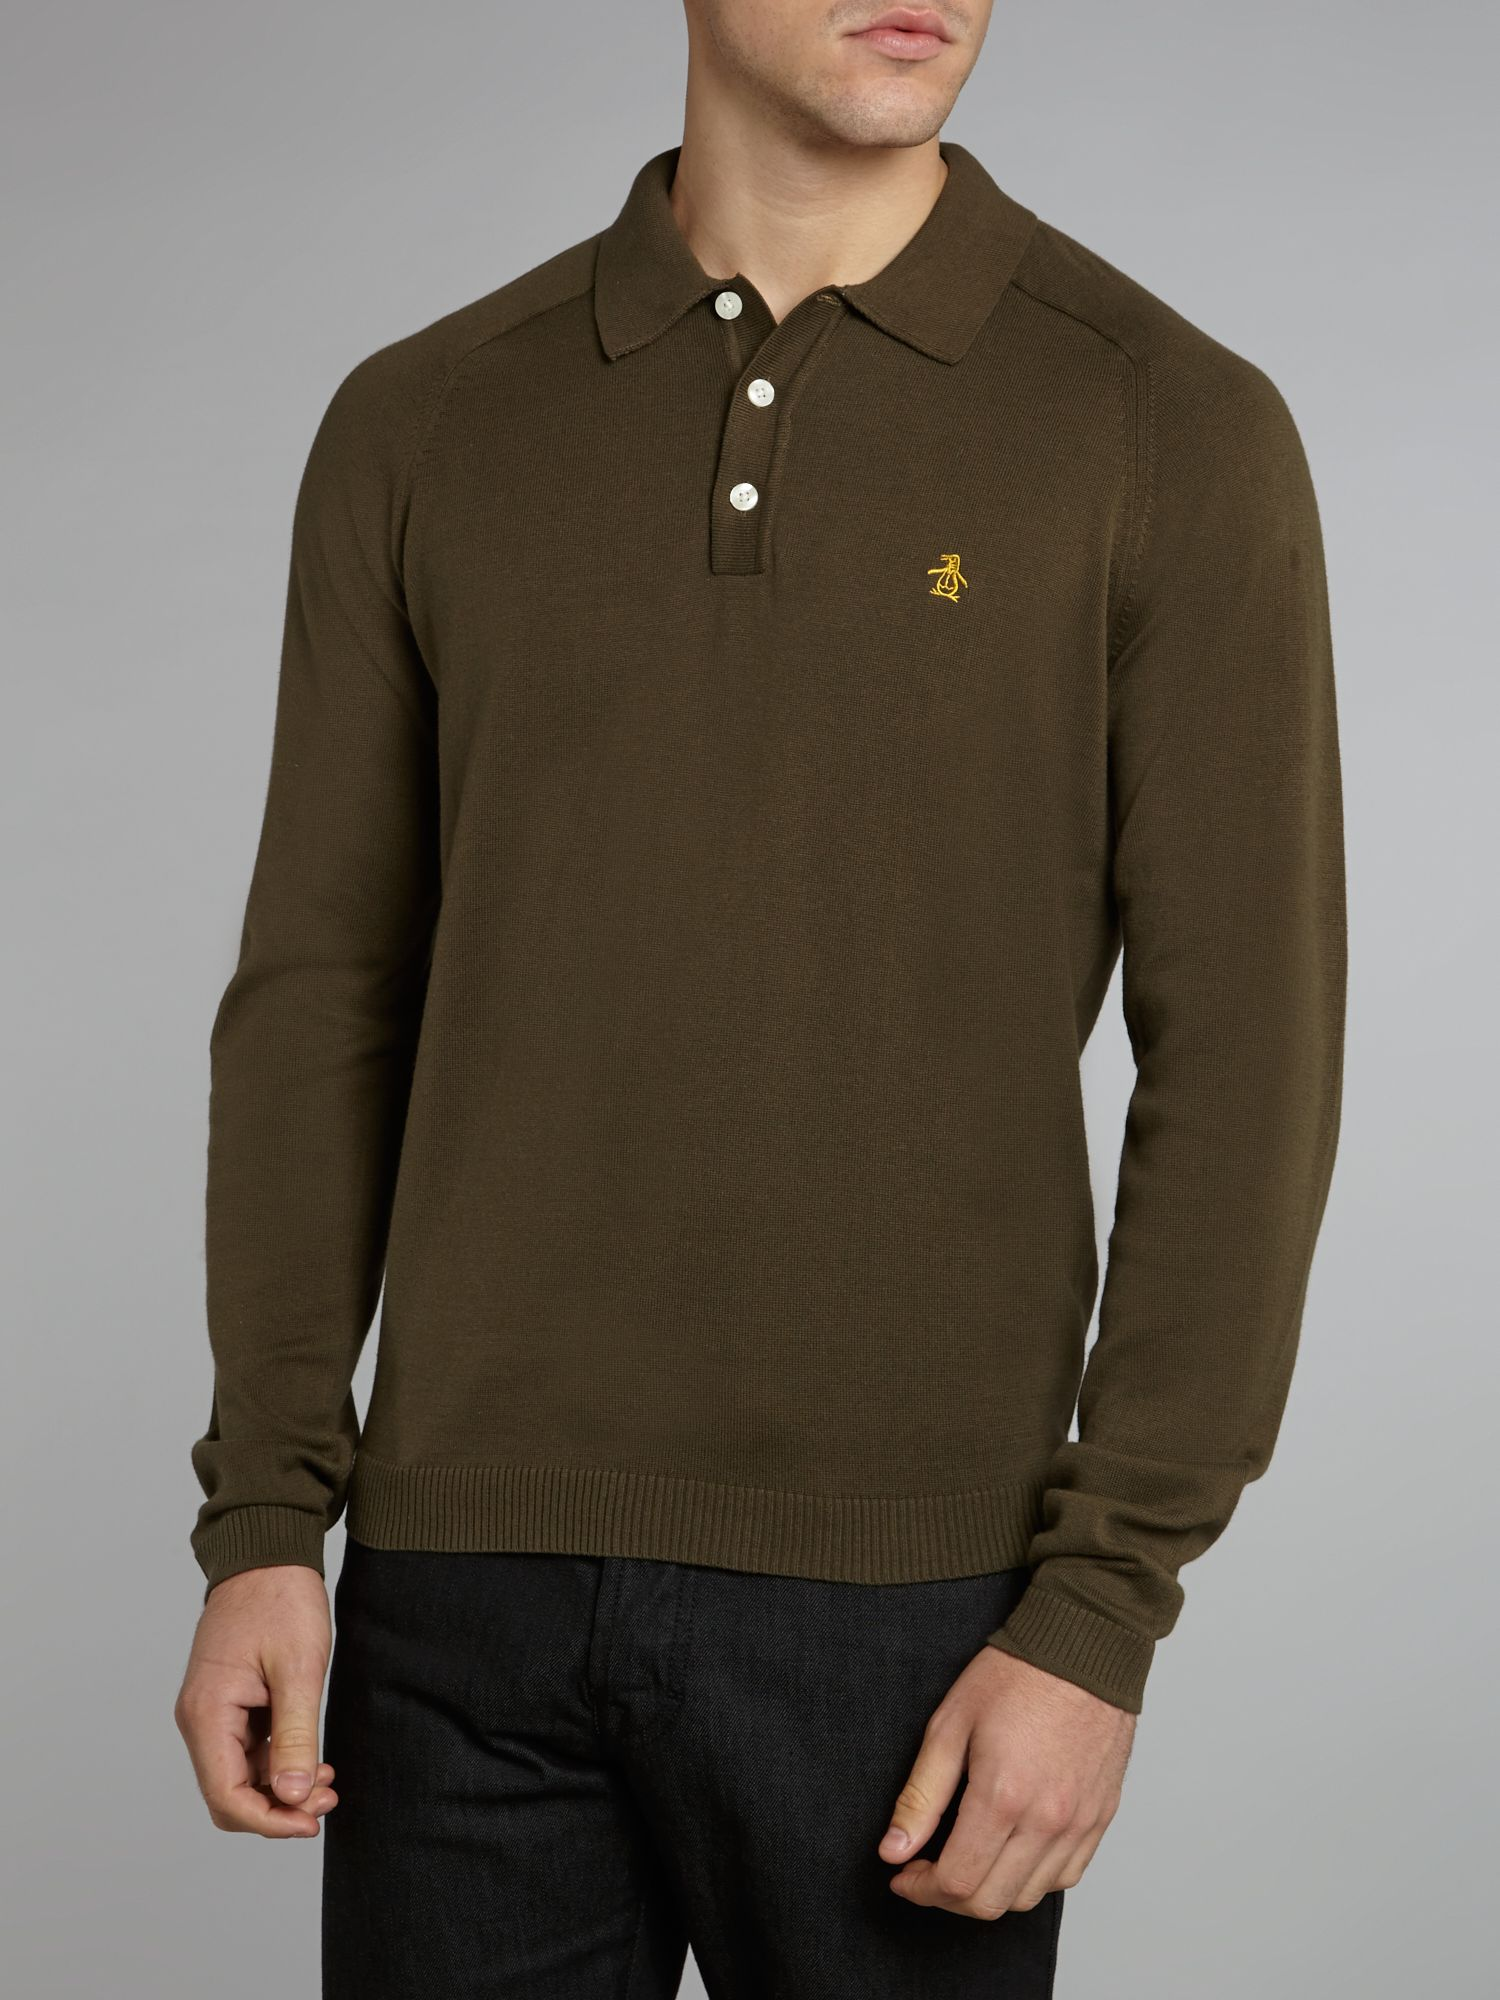 Original Penguin Cotton Long Sleeve Sweater Polo in Olive (Green) for Men